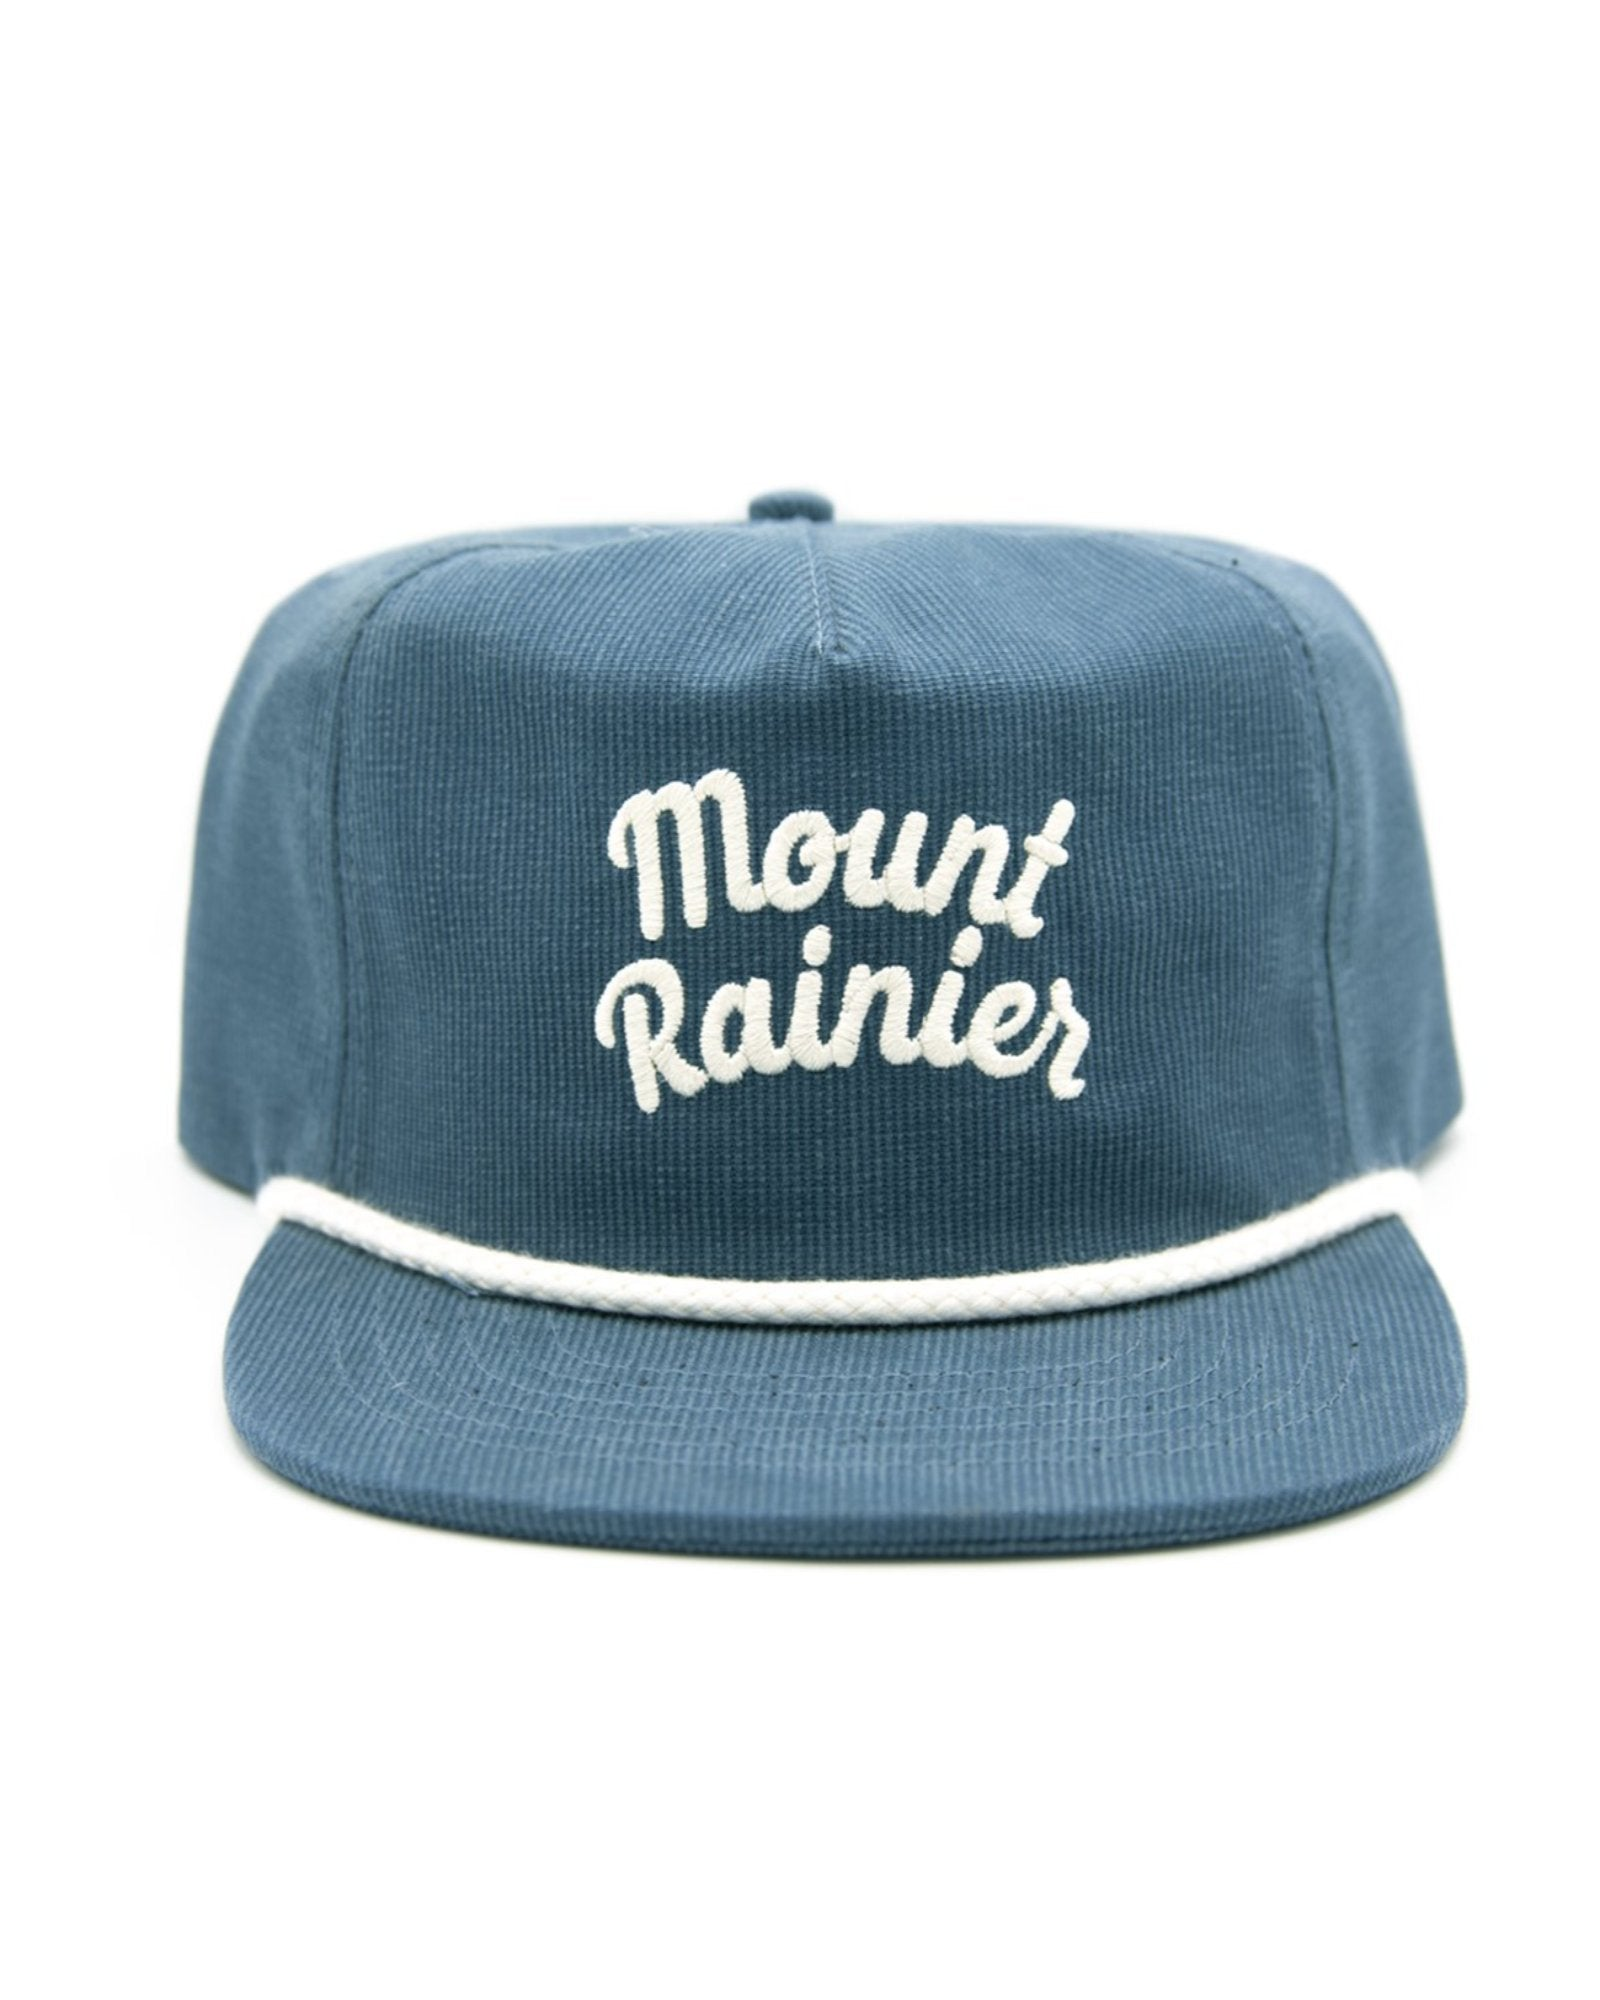 Mount Rainier Throwback Cord Hat | Parks Project | National Parks Hats